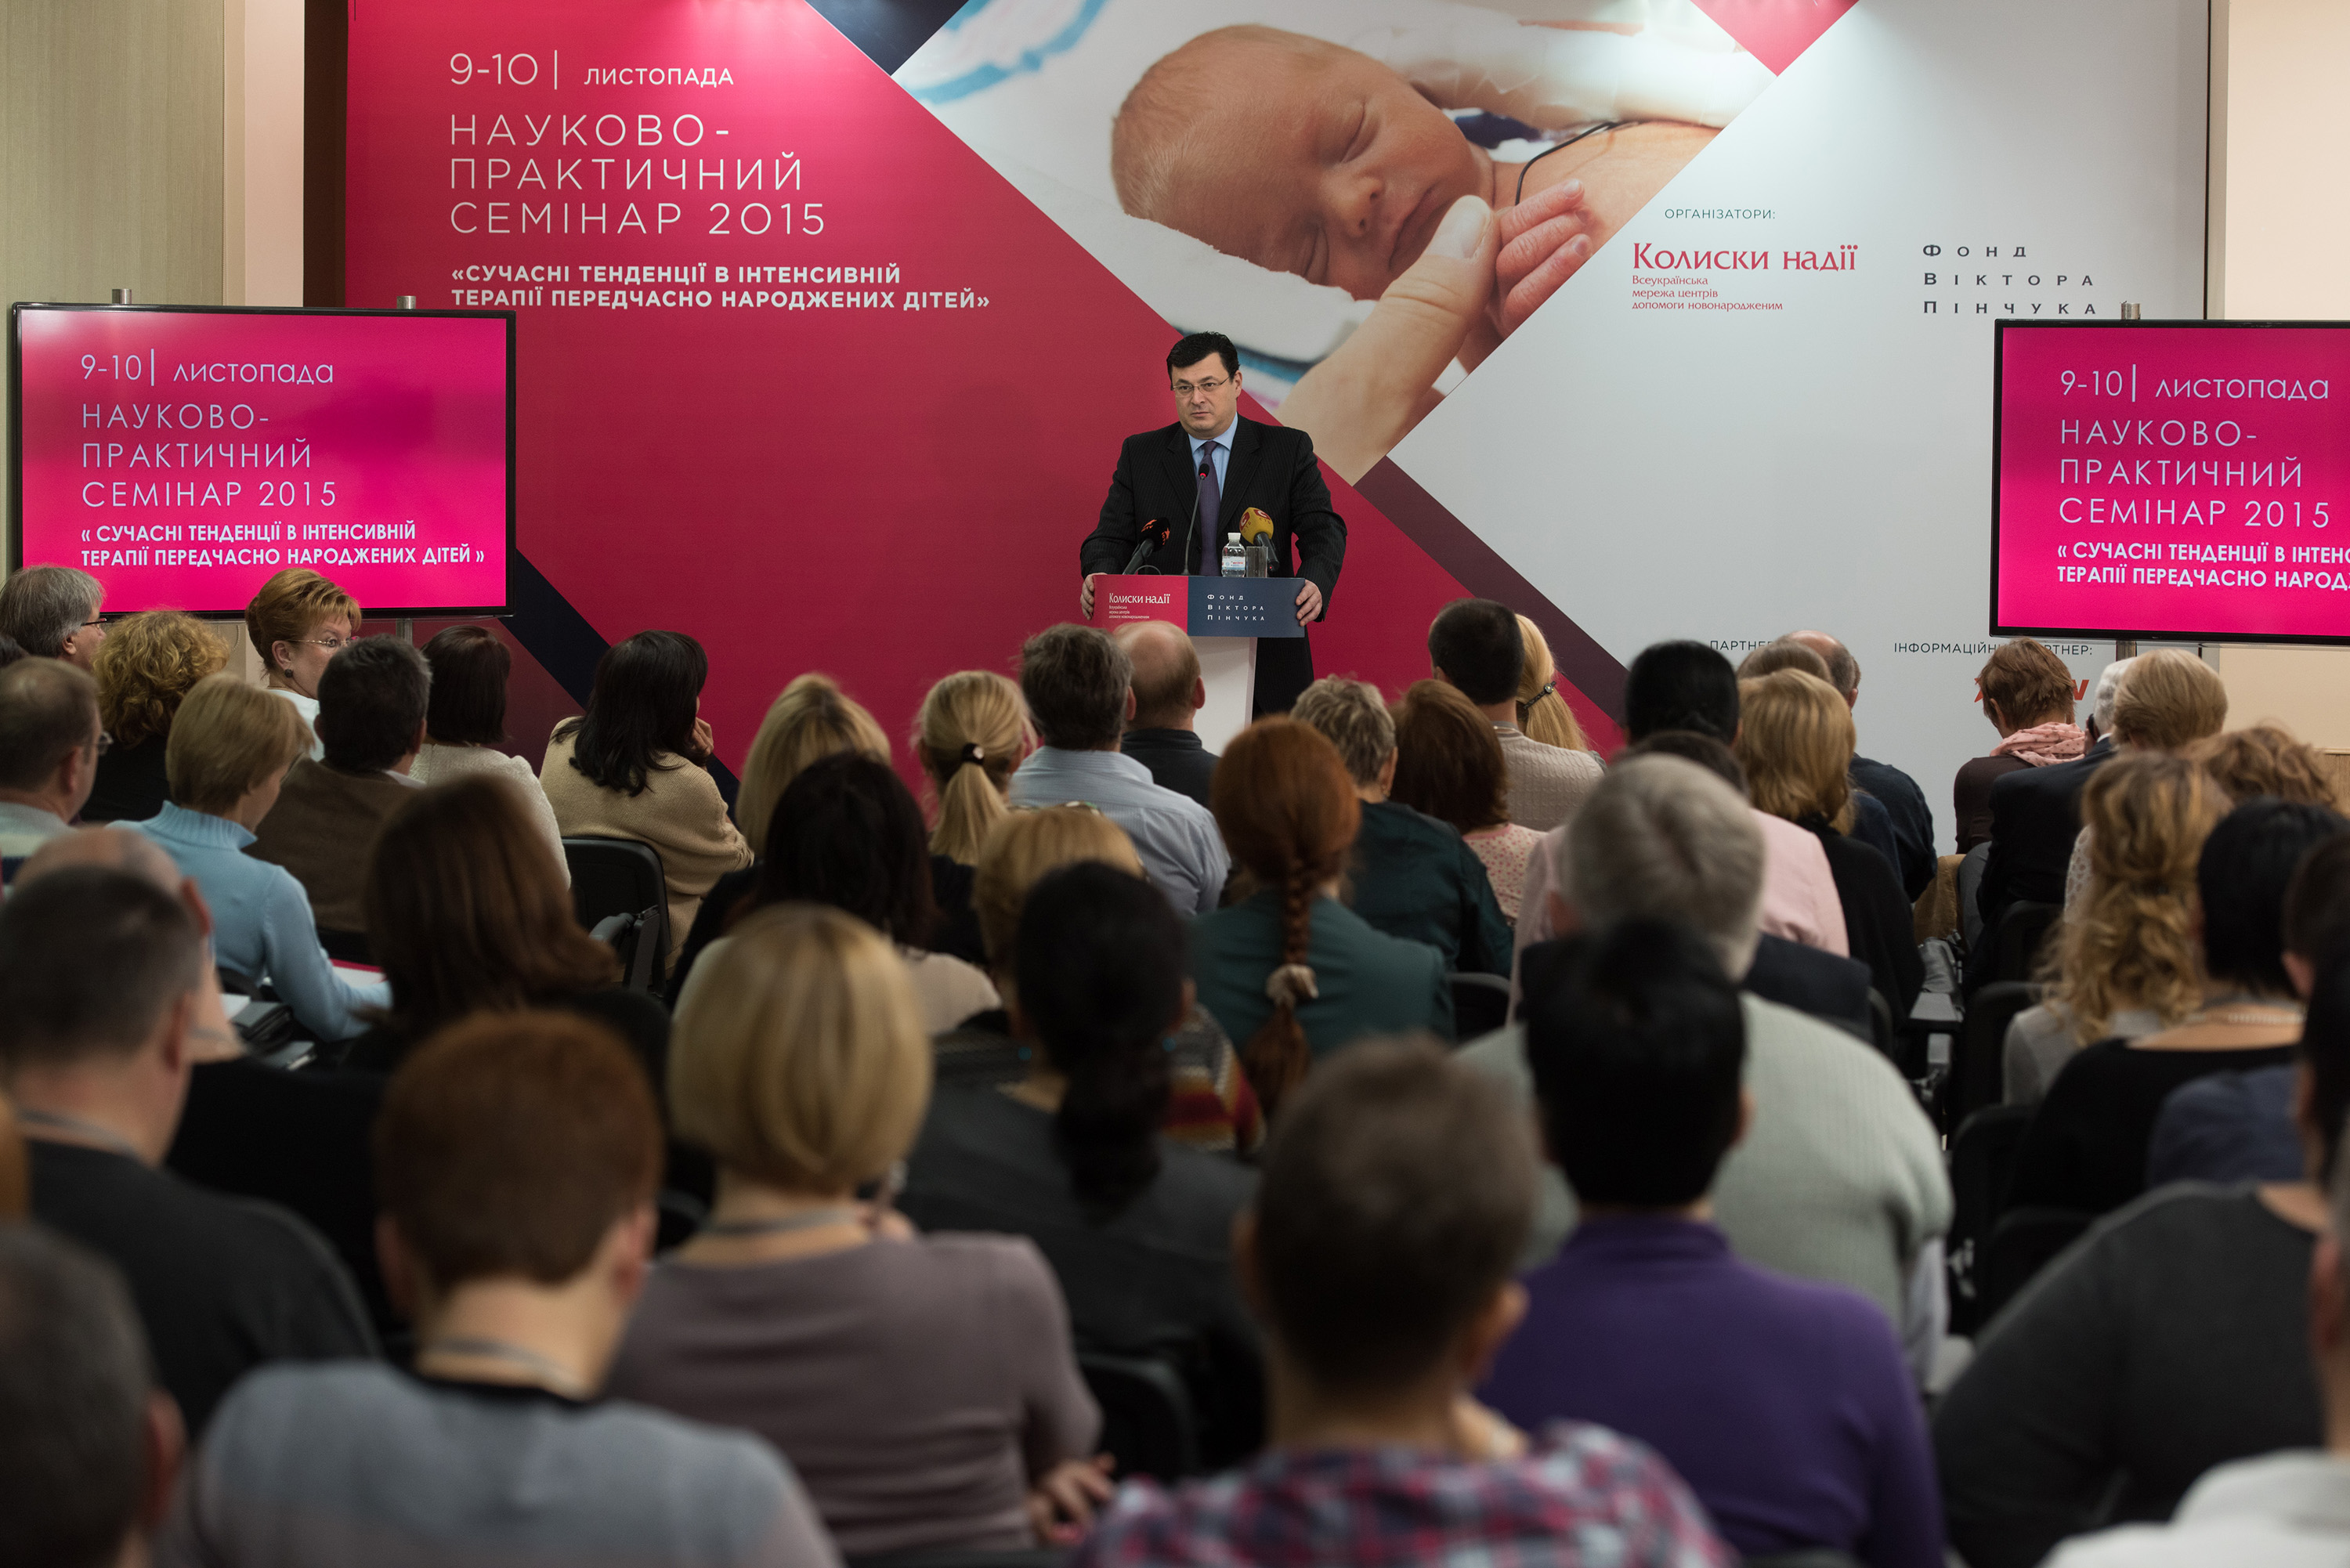 International conference for neonatologists in Kyiv, as part of the